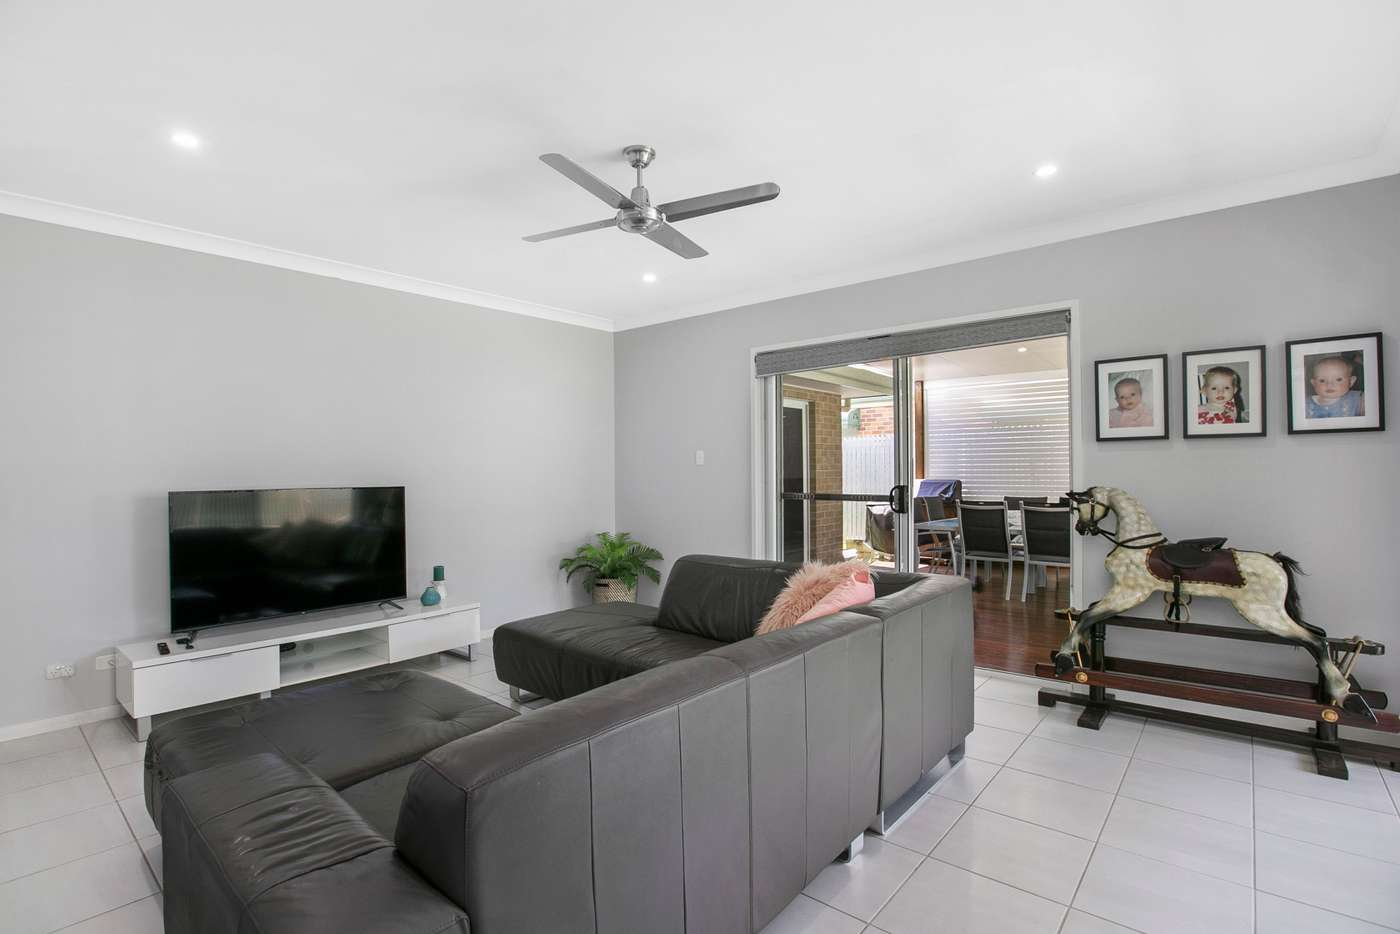 Sixth view of Homely house listing, 3 Tonita Court, Birkdale QLD 4159